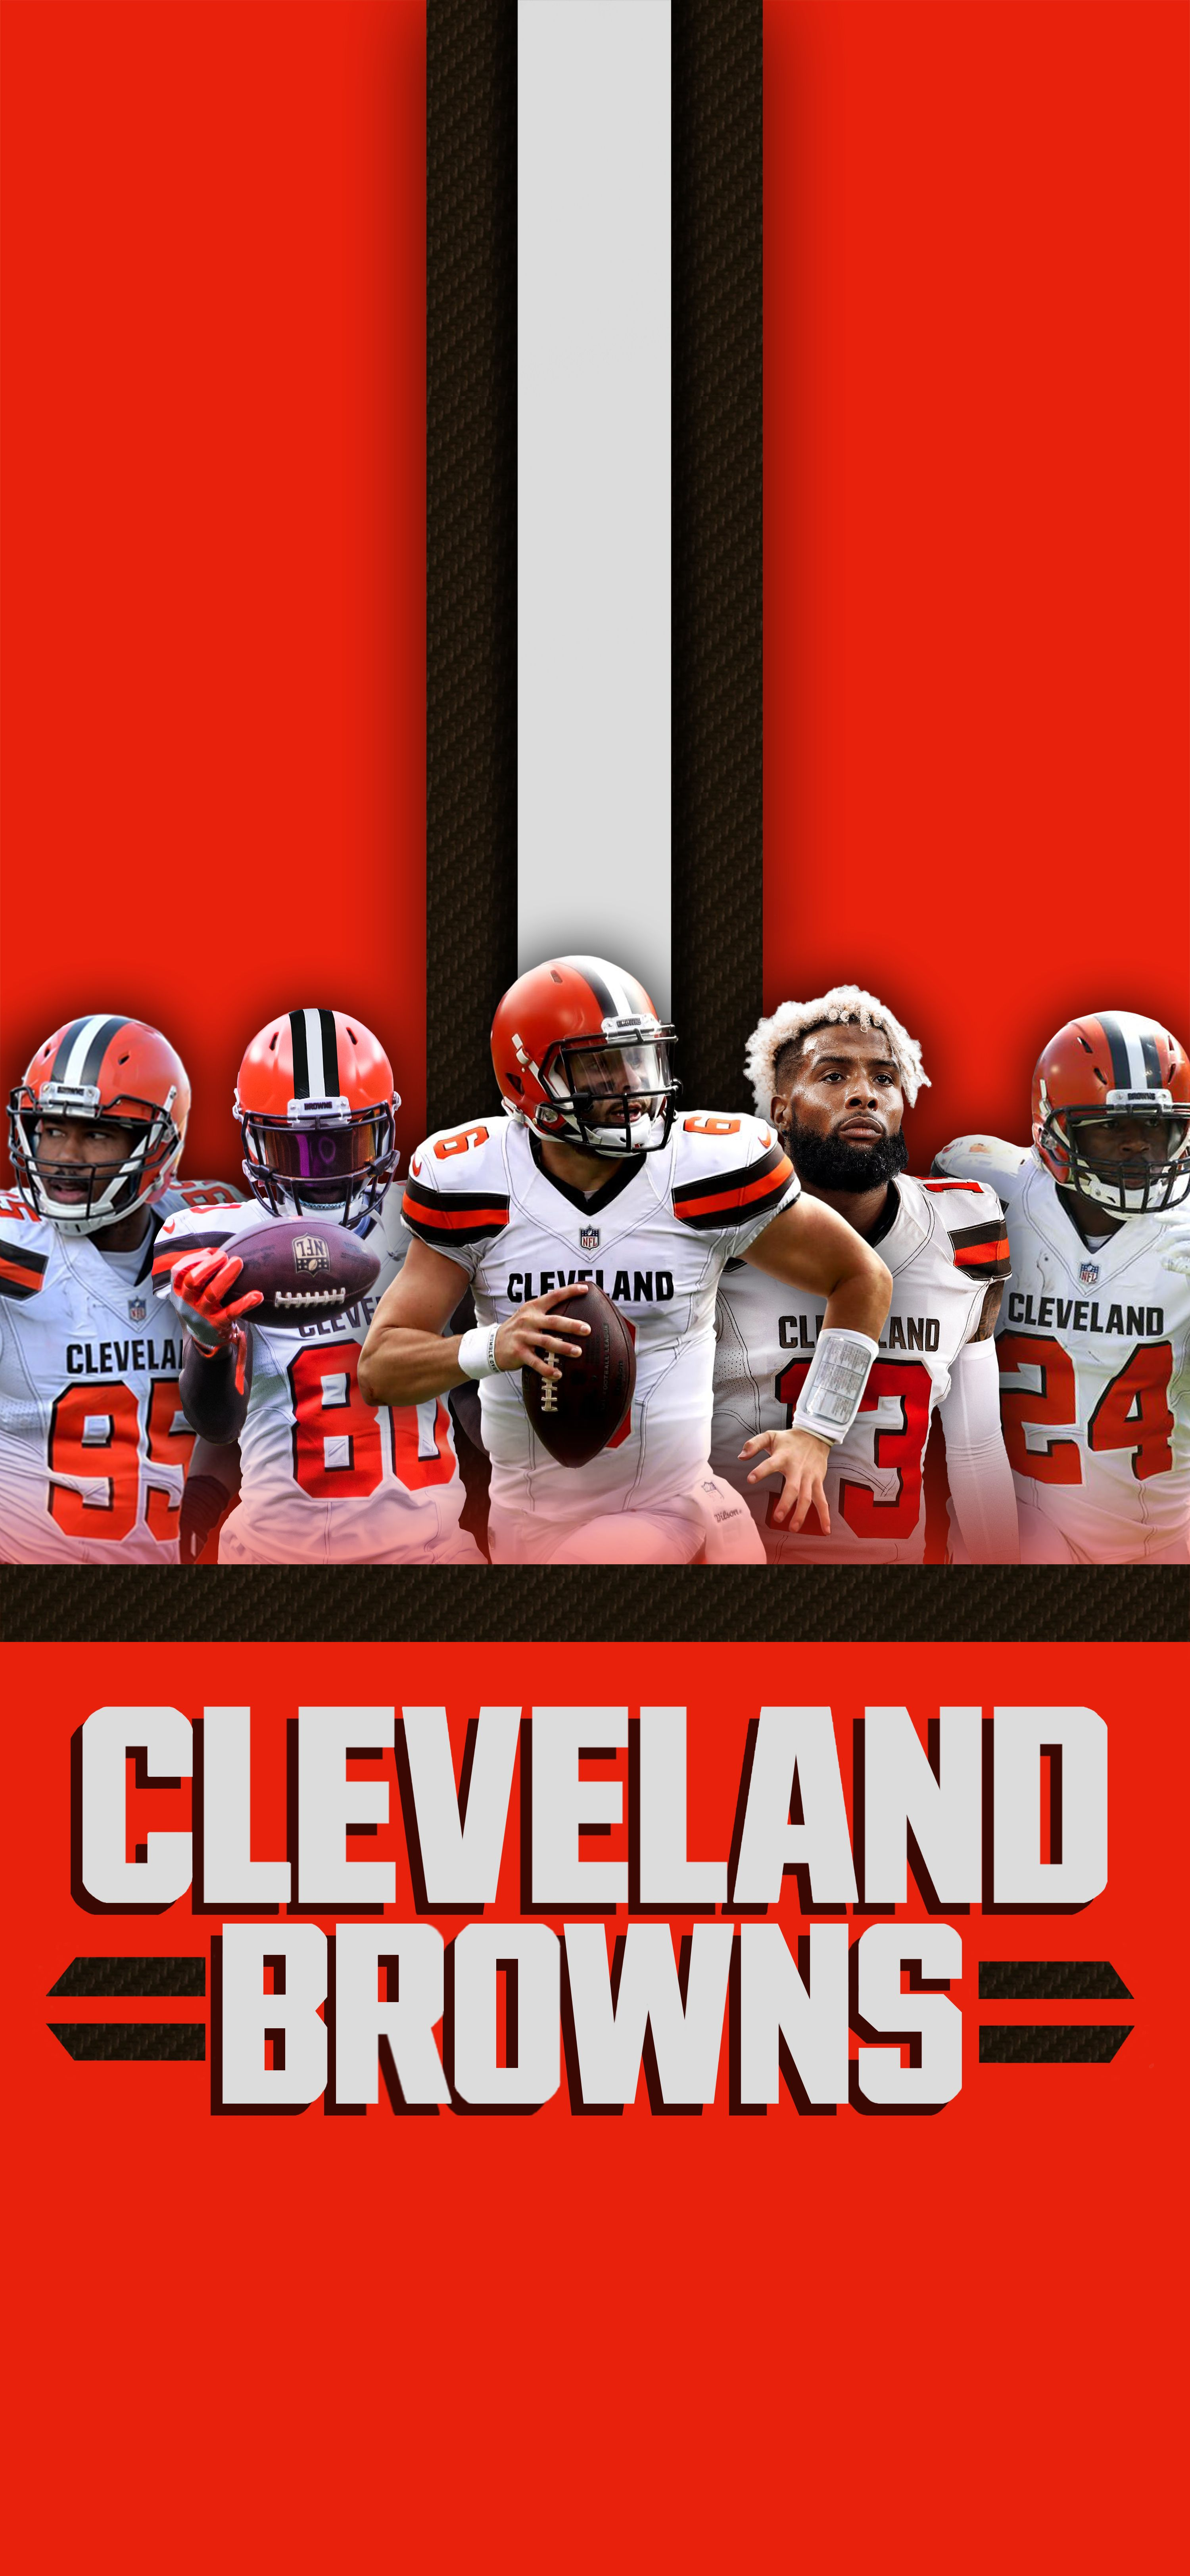 Cleveland Browns Wallpapers Top Free Cleveland Browns